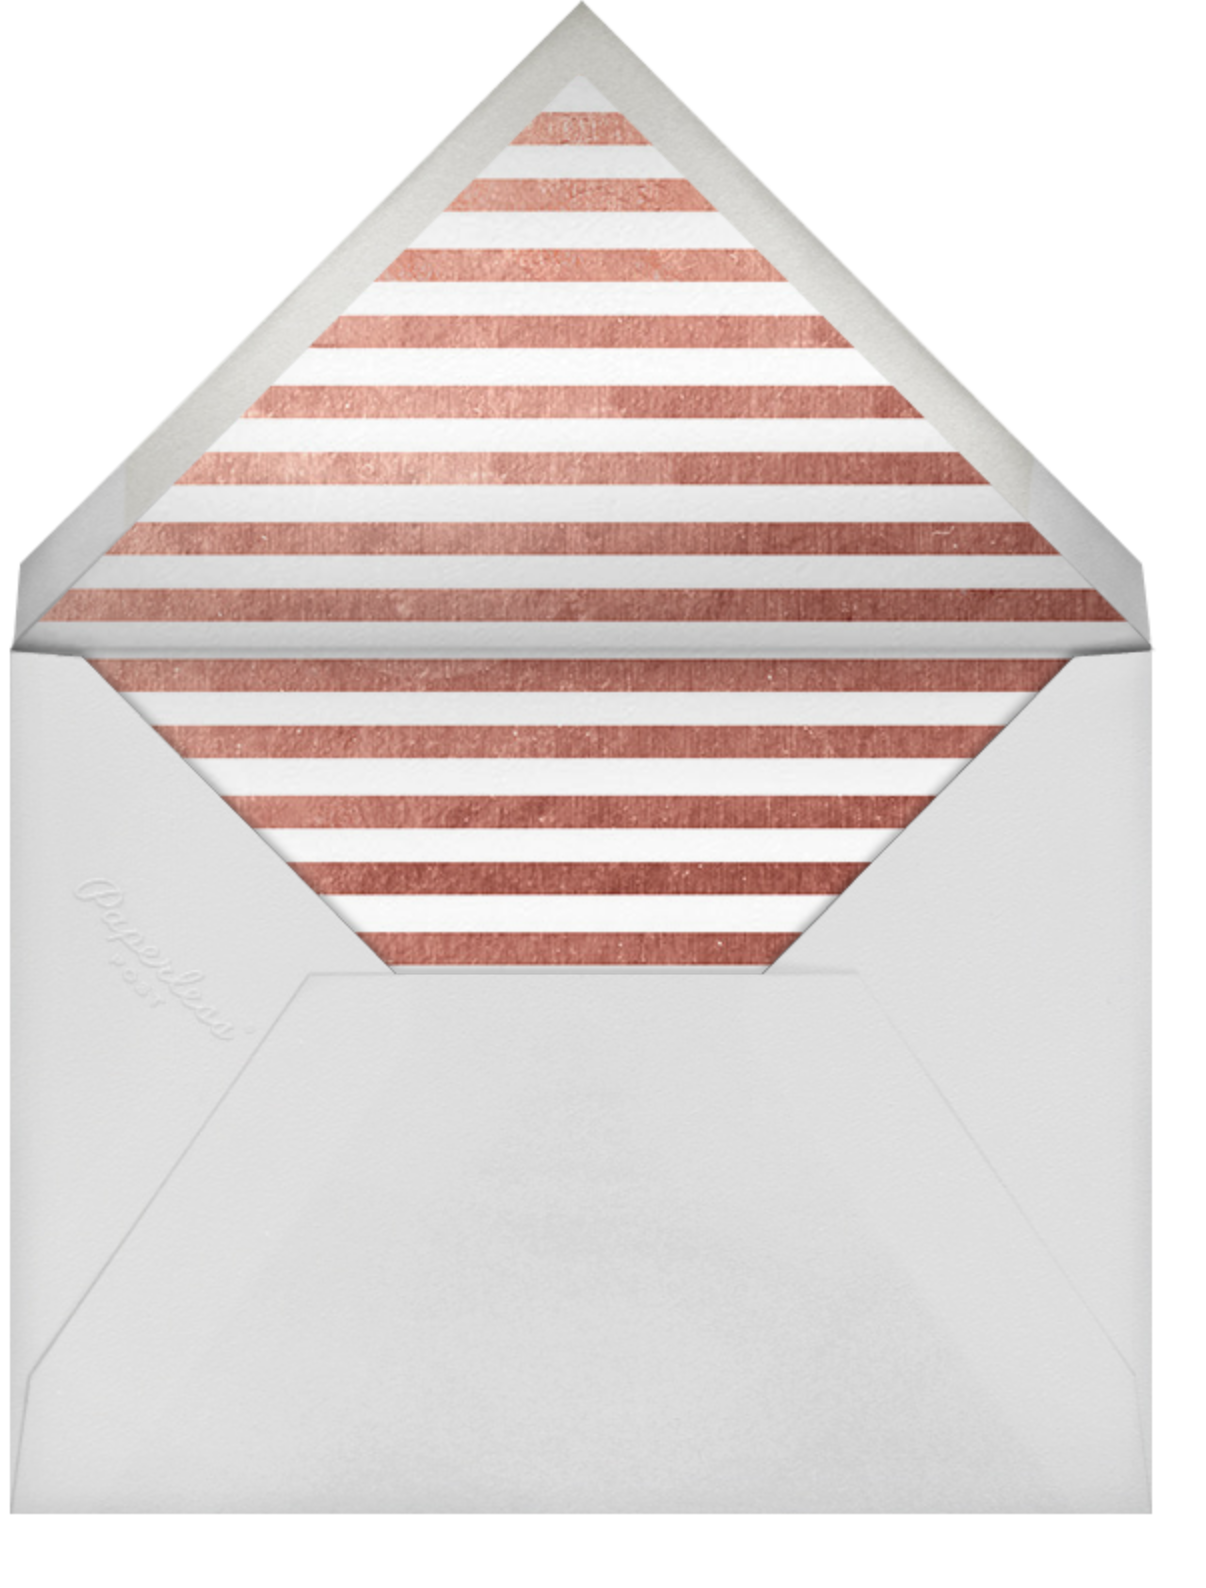 Confetti (Save the Date) - Navy/Rose Gold - kate spade new york - Save the date - envelope back